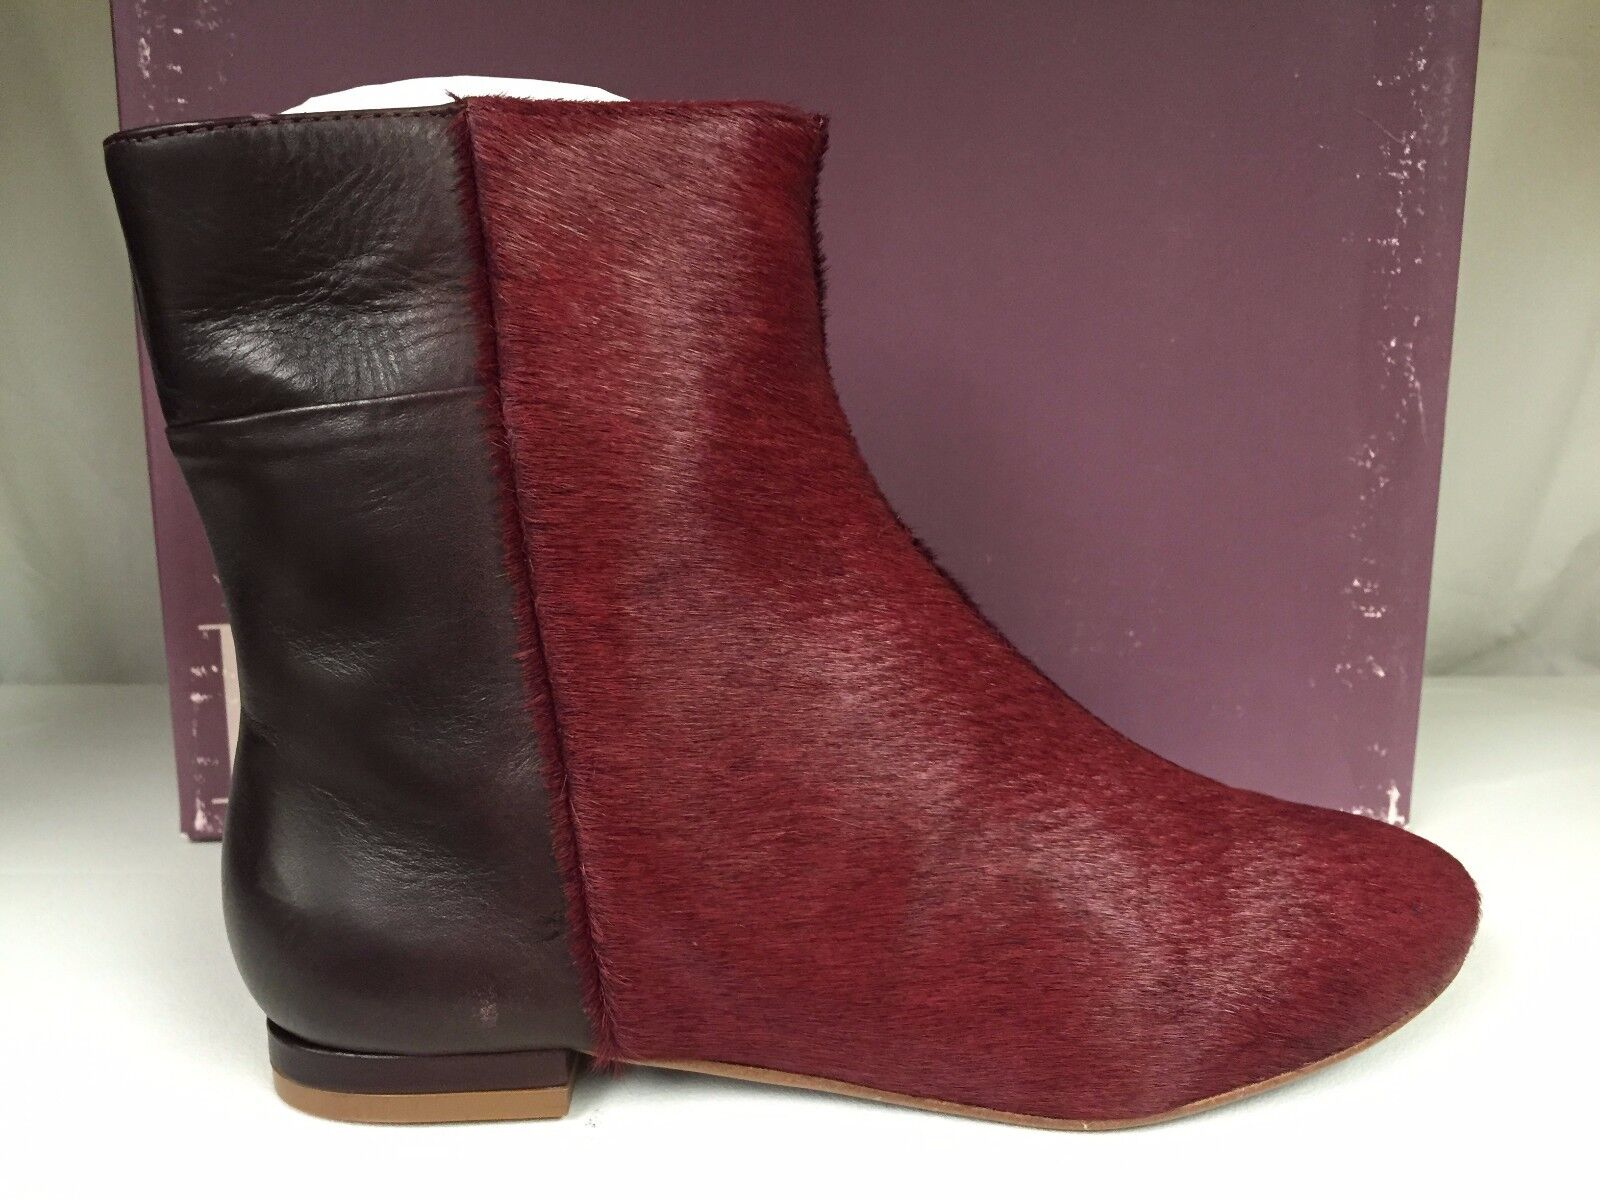 Kooba Genevieve Women's Fashion Ankle Leather Pony Hair Boots Booties Red